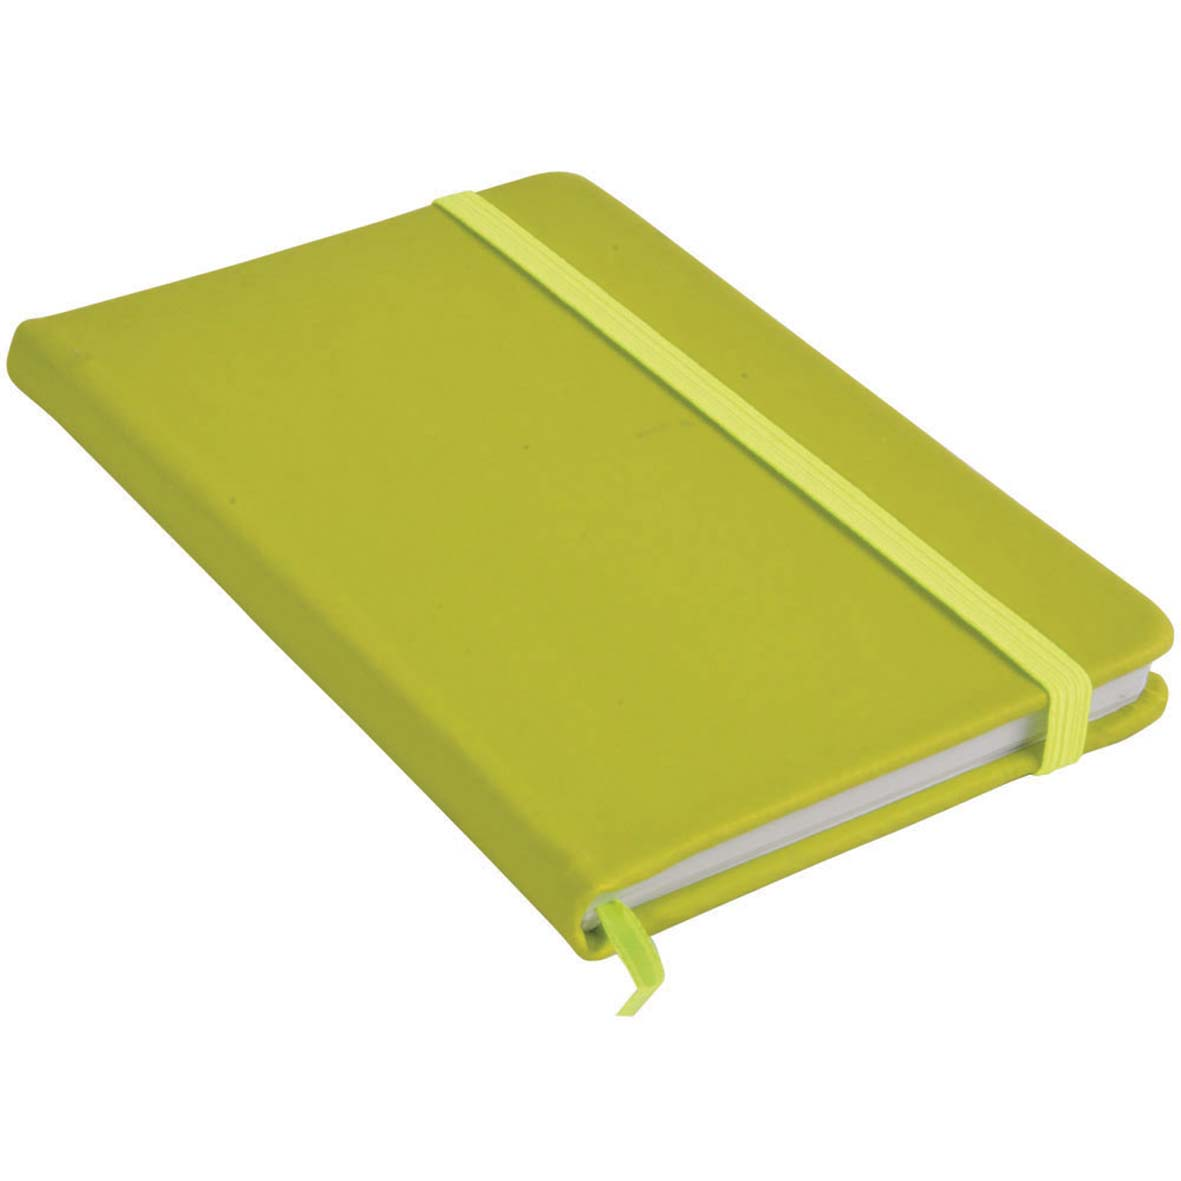 Note book with PU cover and elastic band for closing -  Apple Green sip-1441444